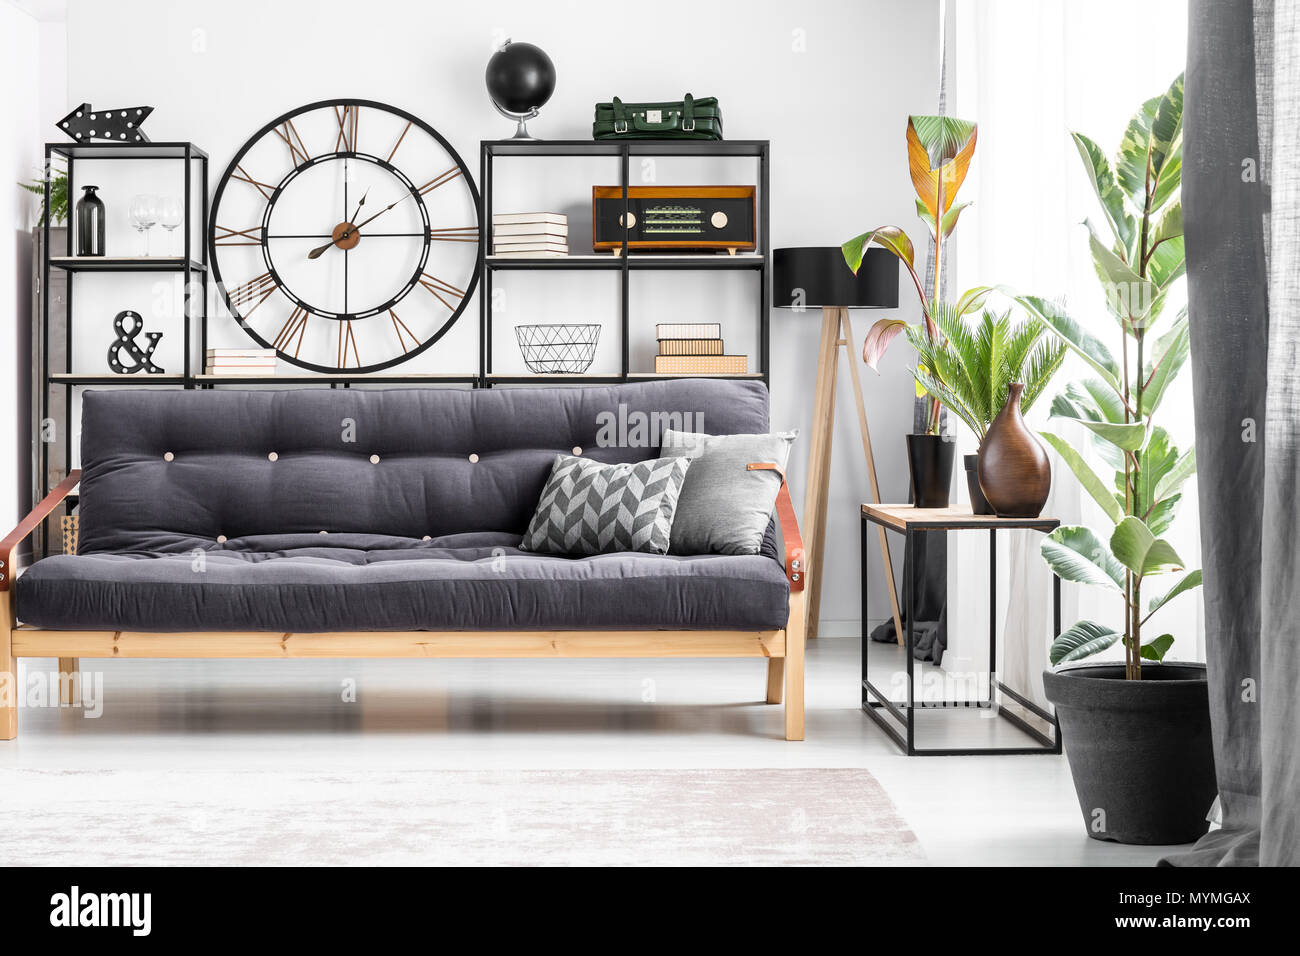 Black wood and leather couch with a patterned cushion standing in bright living room interior with clock on the wall Stock Photo